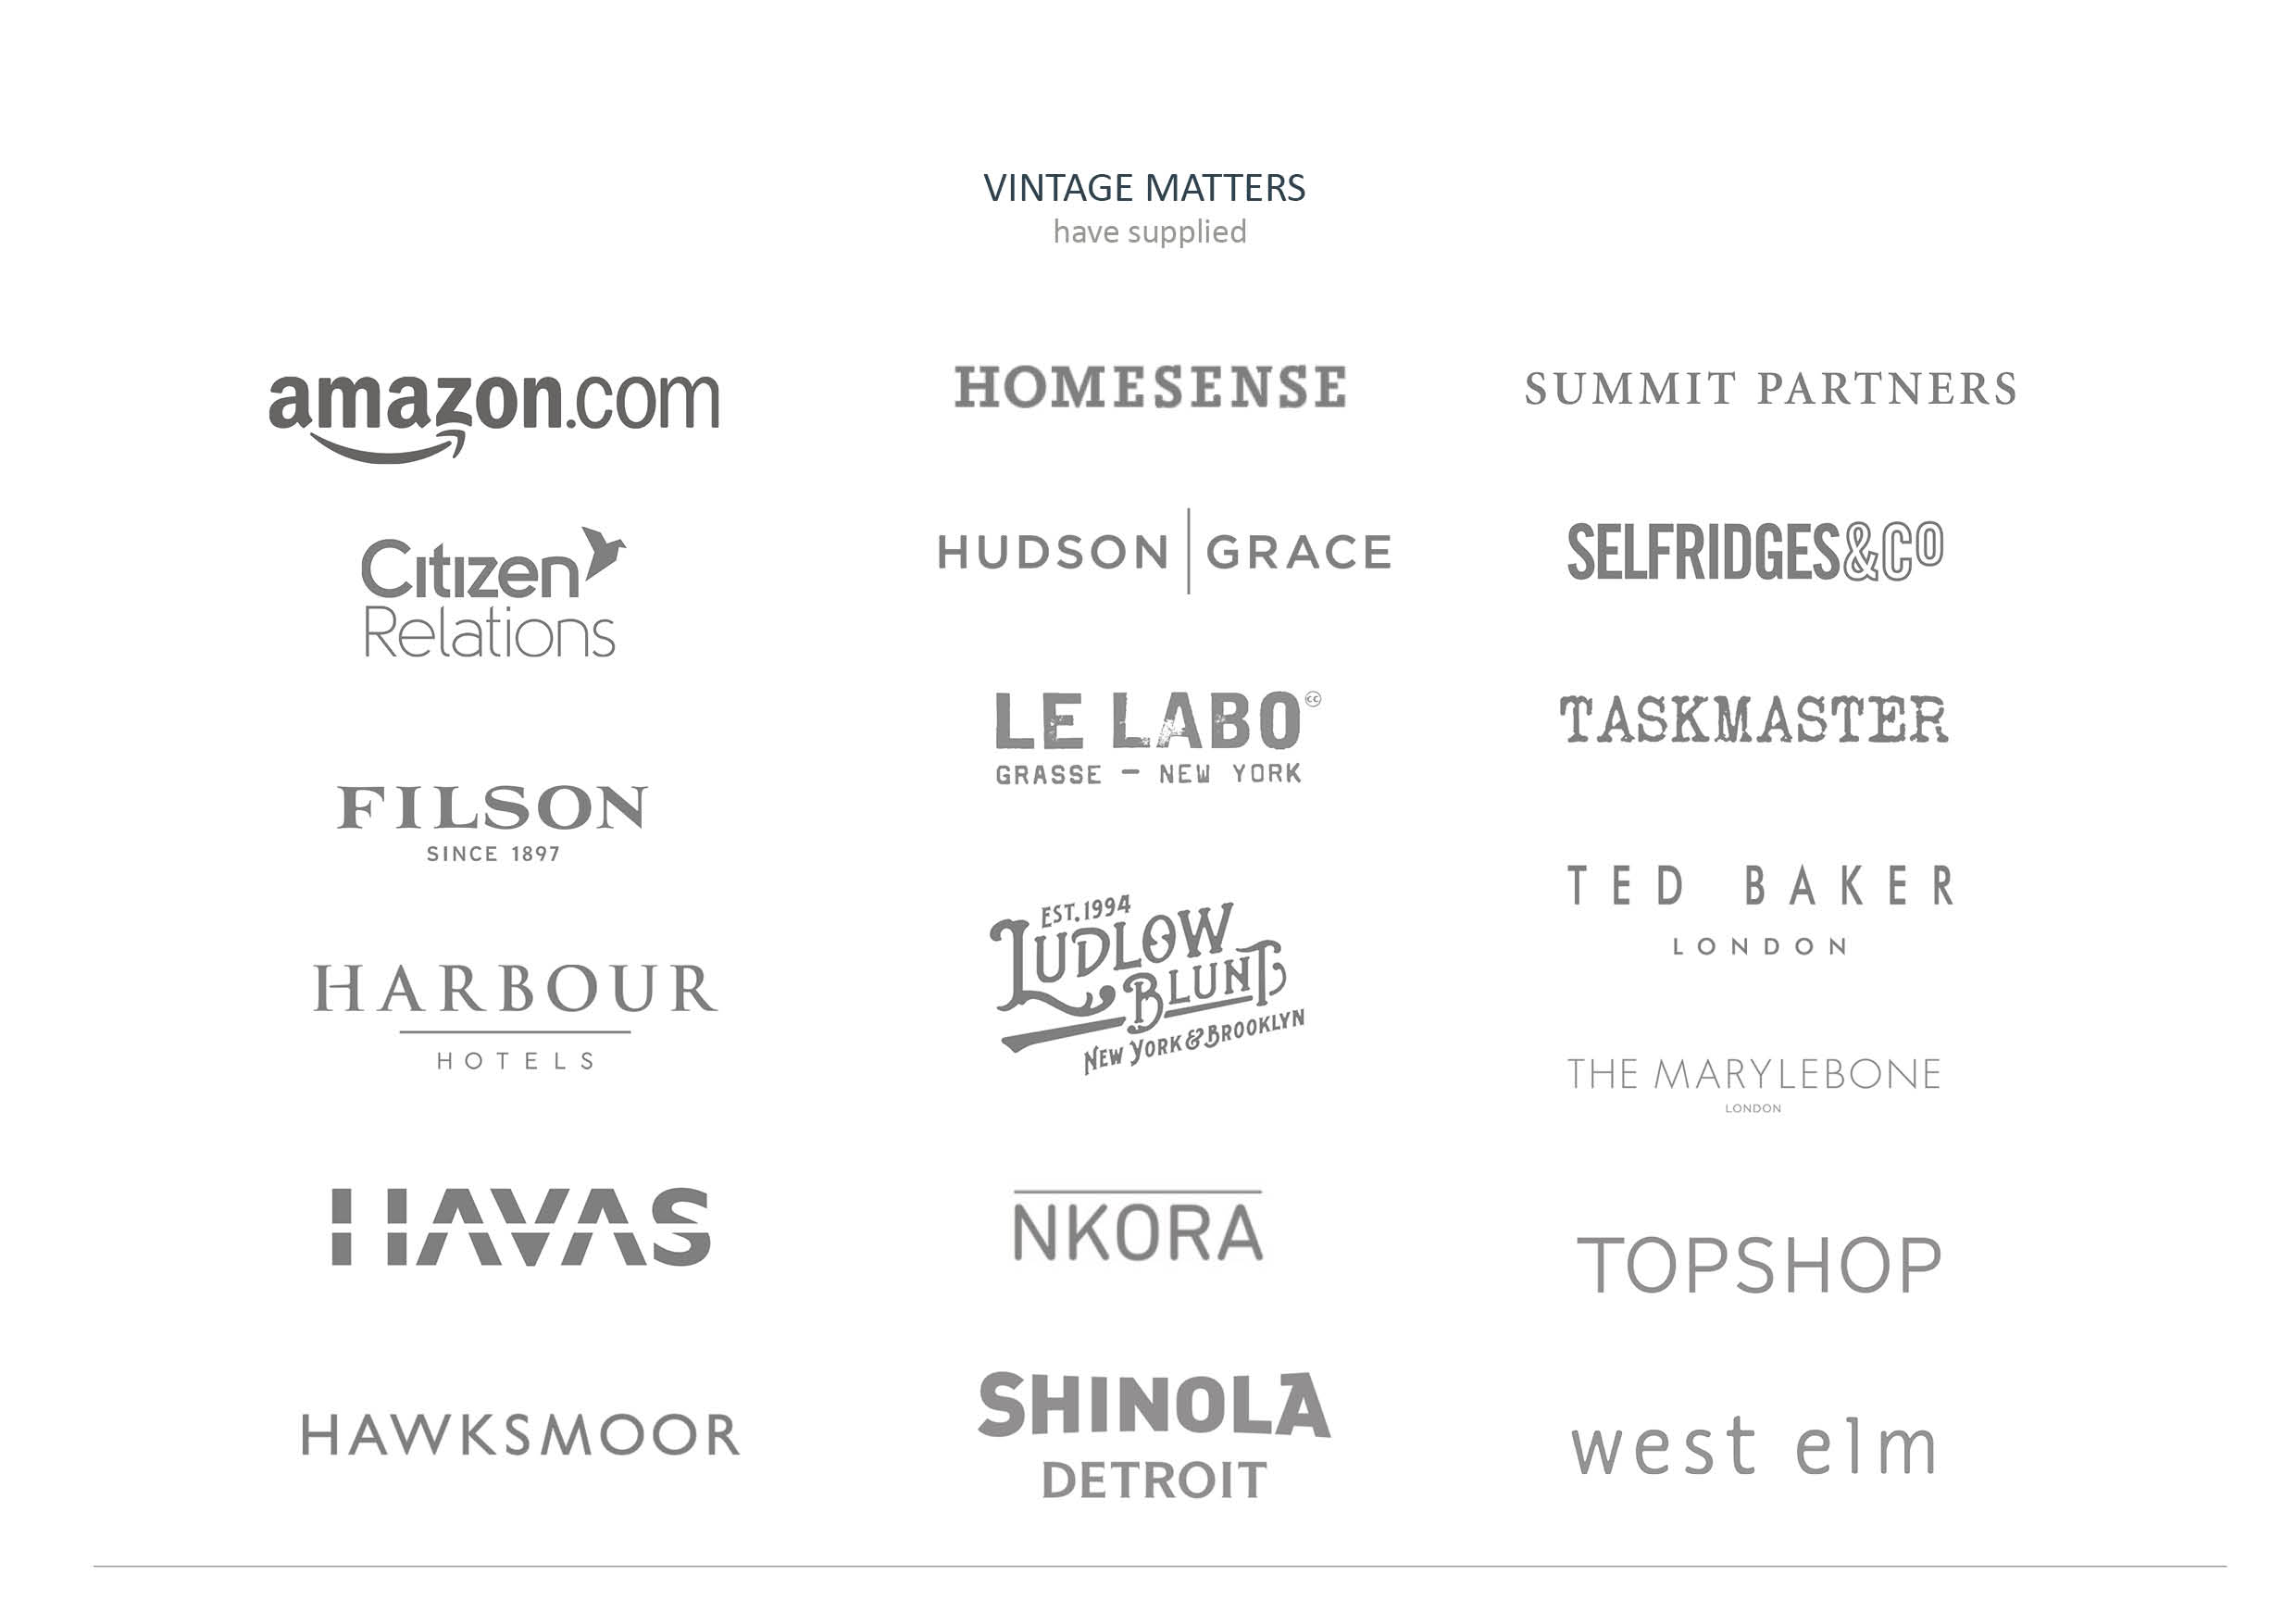 190213 Vintage Matters Commercial Projects for web logo